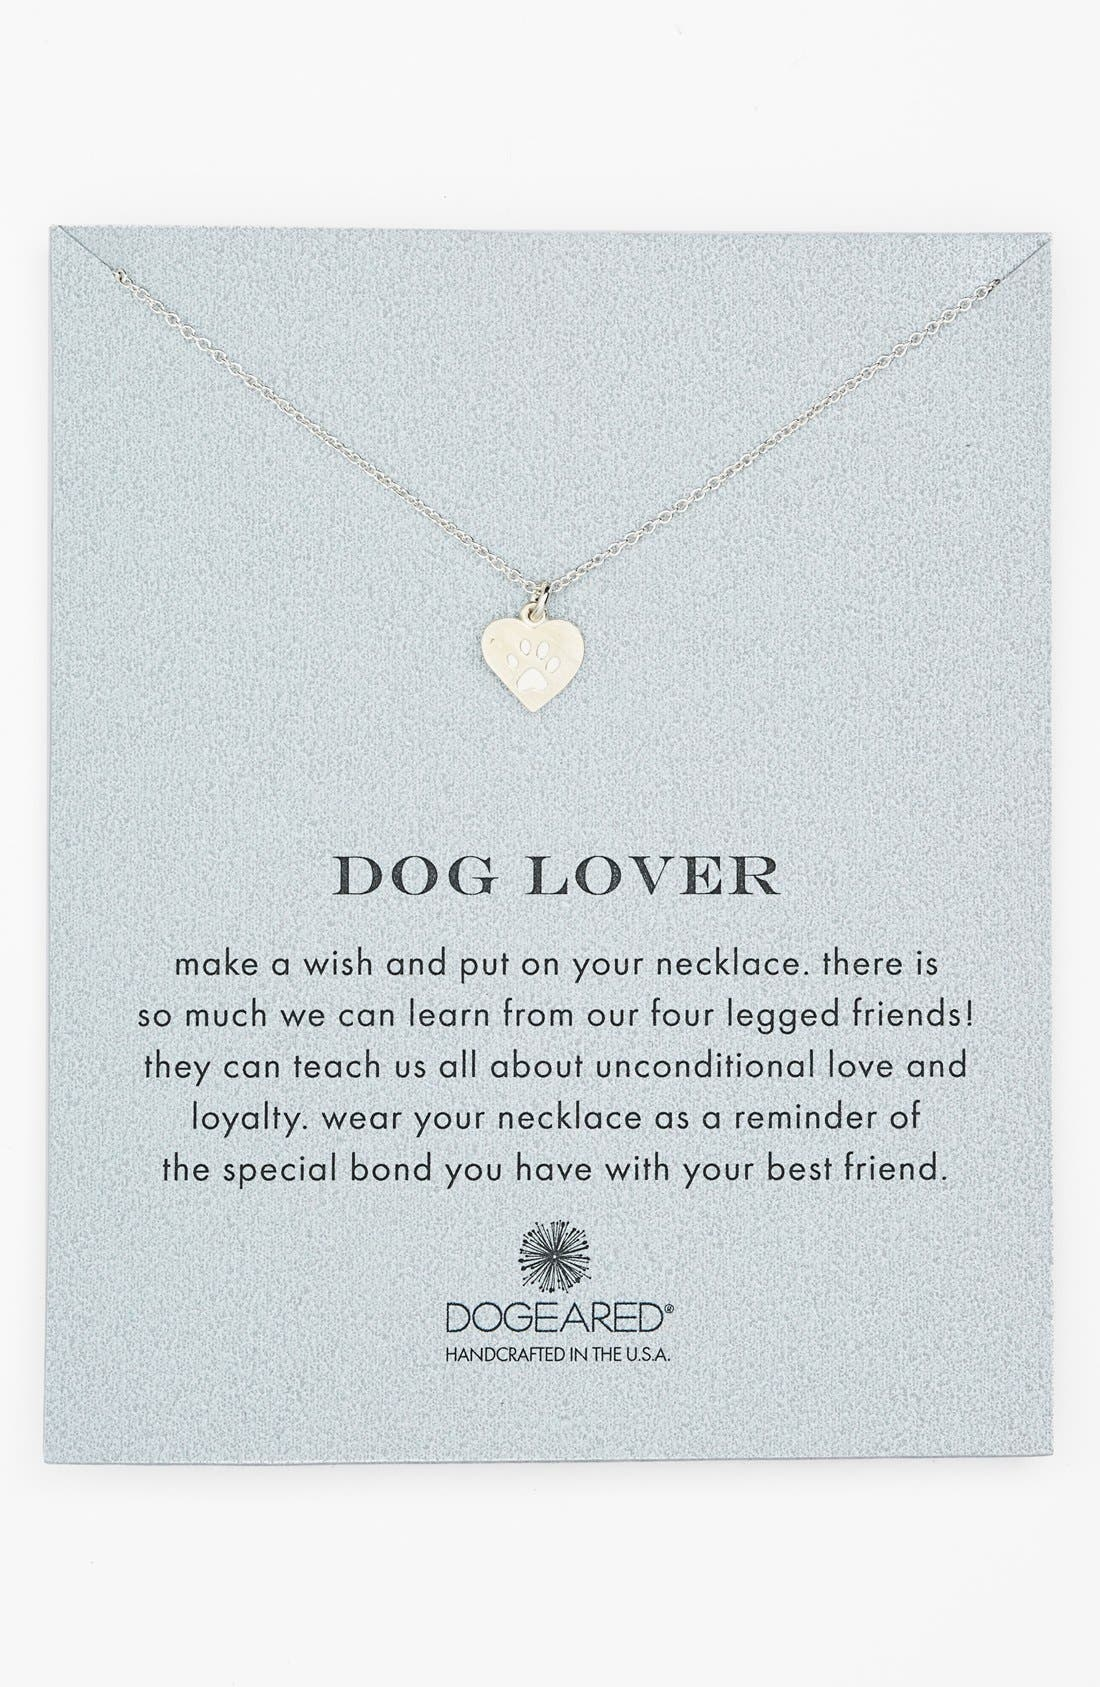 Alternate Image 1 Selected - Dogeared 'Reminder - Dog Lover' Boxed Pendant Necklace